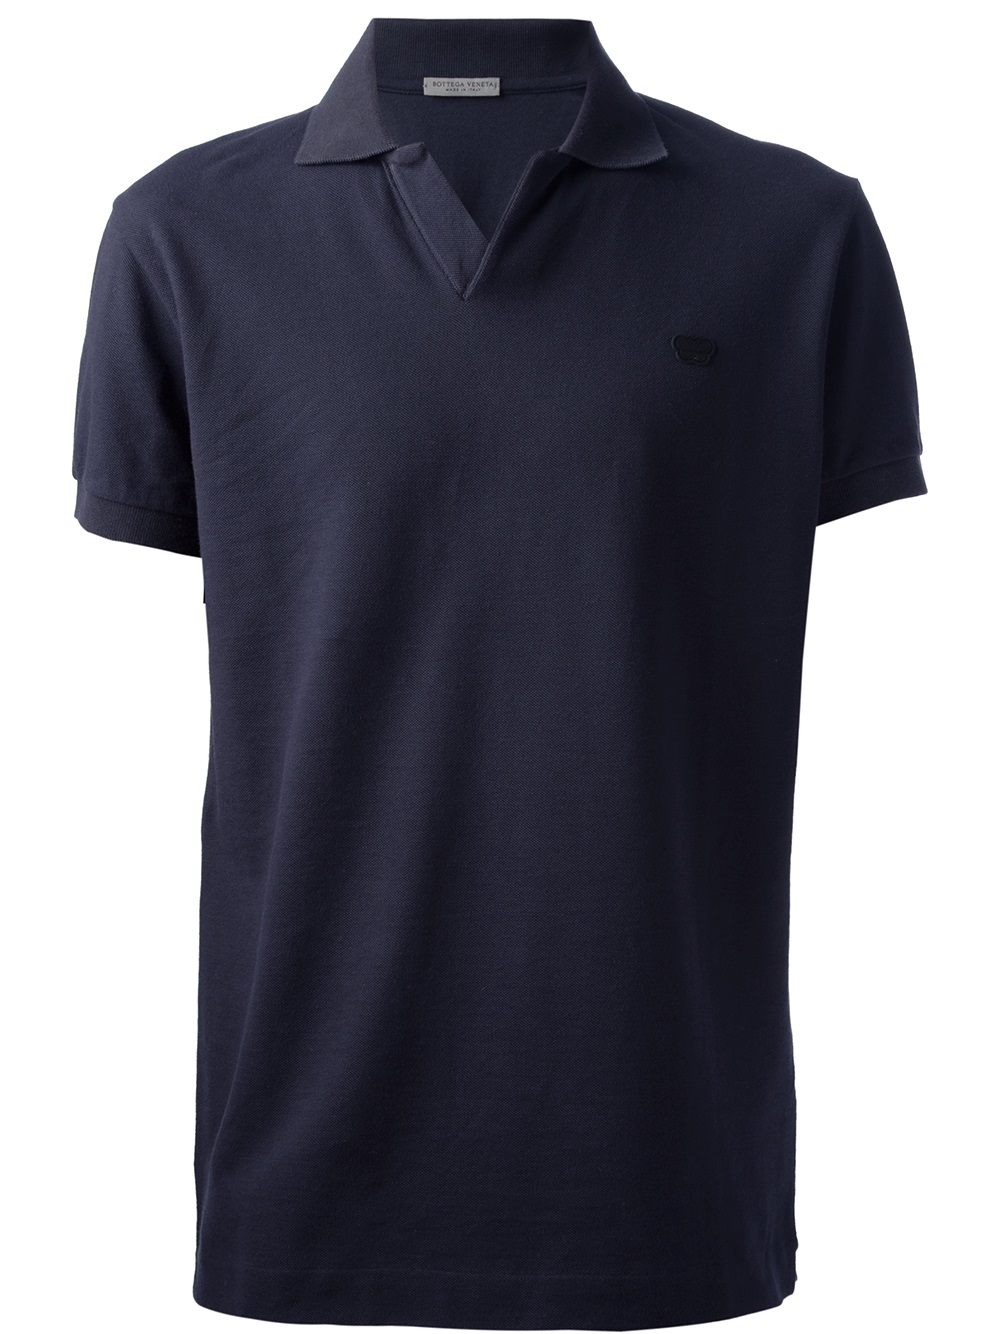 Lyst bottega veneta classic polo shirt in blue for men for Bottega veneta t shirt